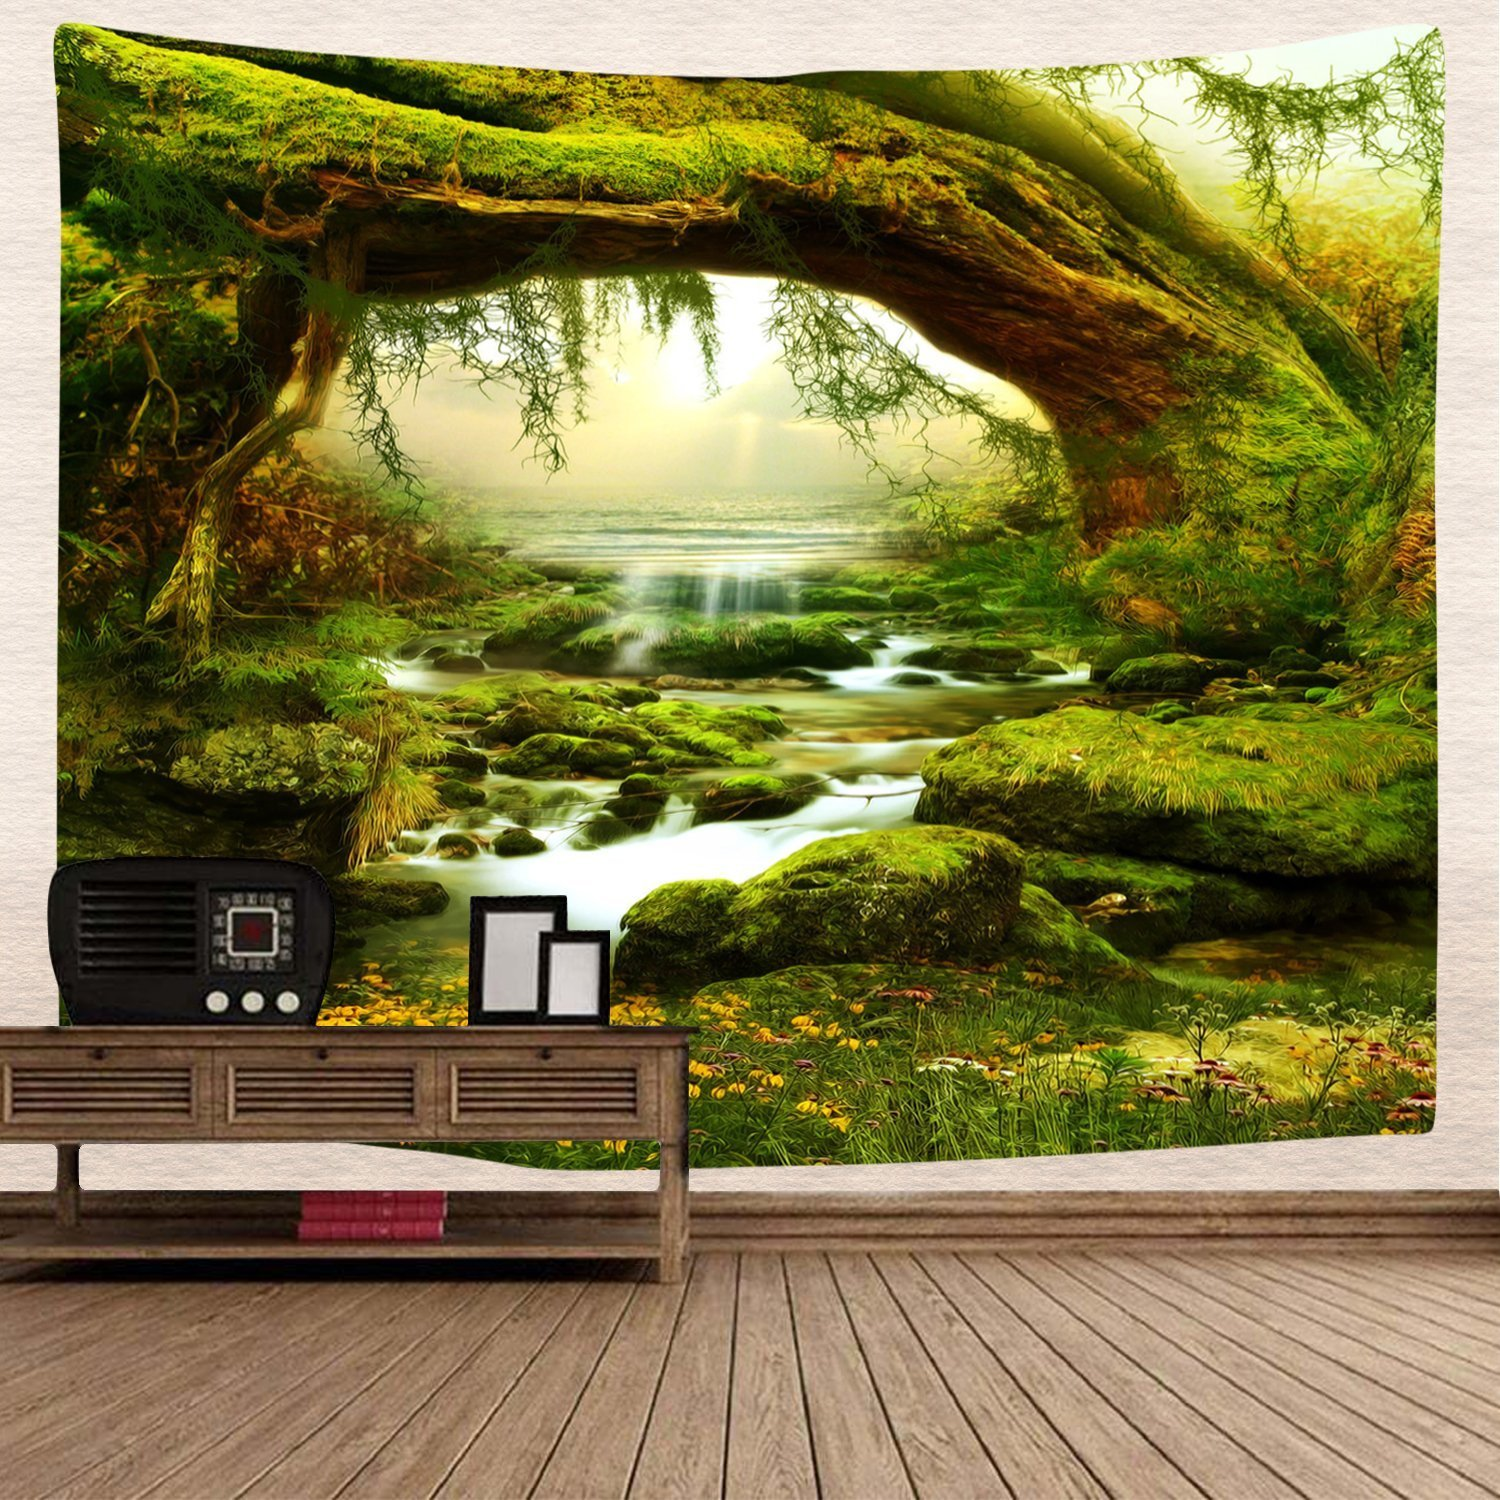 Tapestry Wall Tapestry Wall Hanging Nature Green Tree Jungle Landscape Tapestry Jungle and Streams Tapestry Mysterious Wall Tapestry for Bedroom Dorm Decor